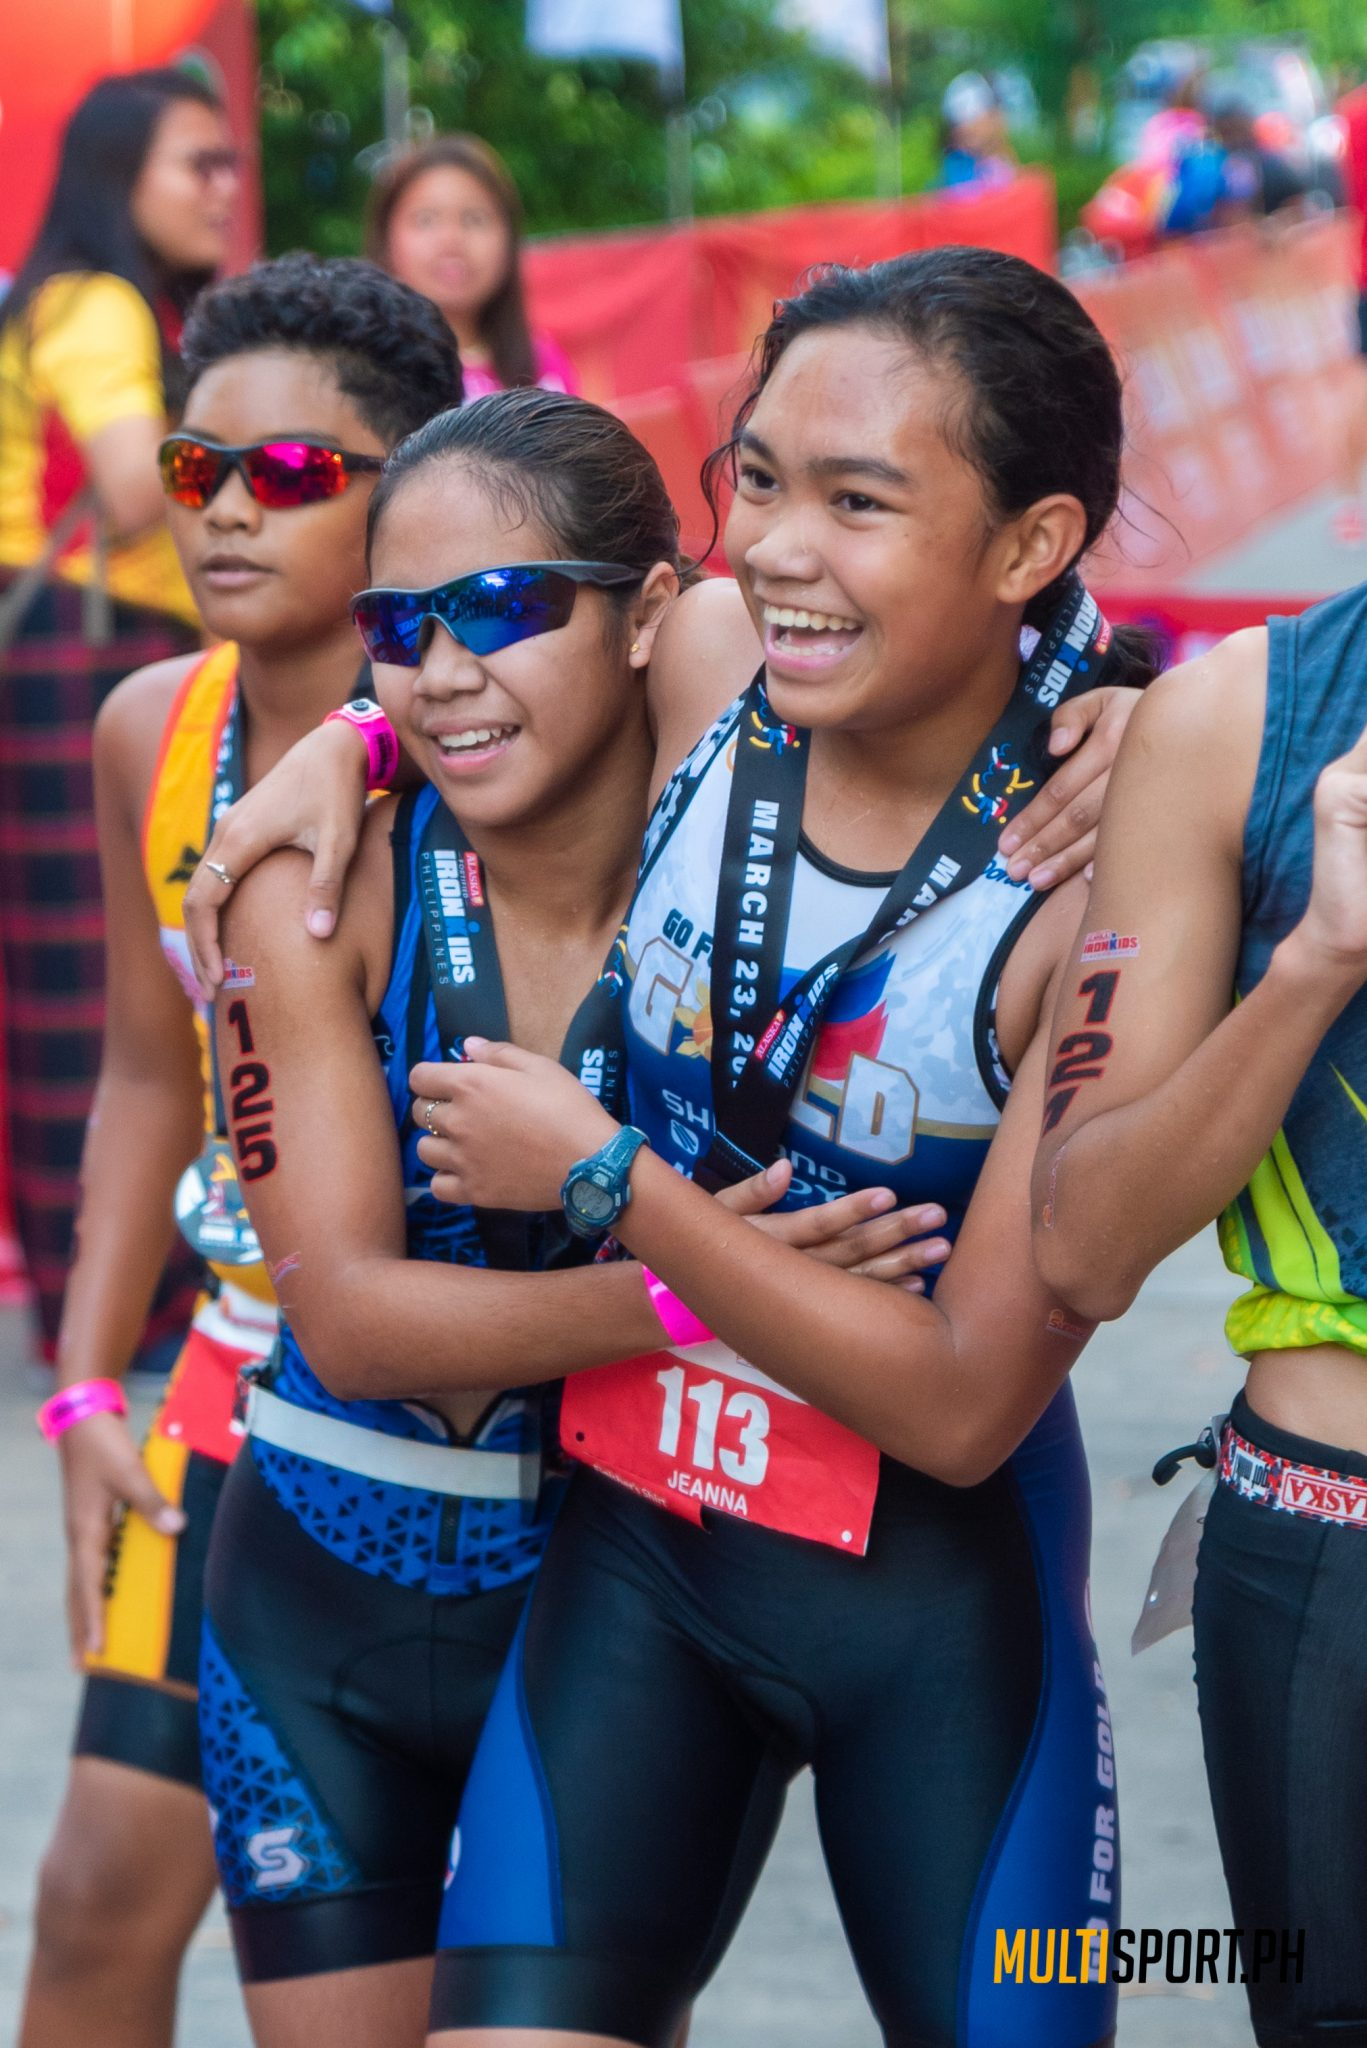 The atmosphere at this year's IronKids race was far more serene compared with previous editions